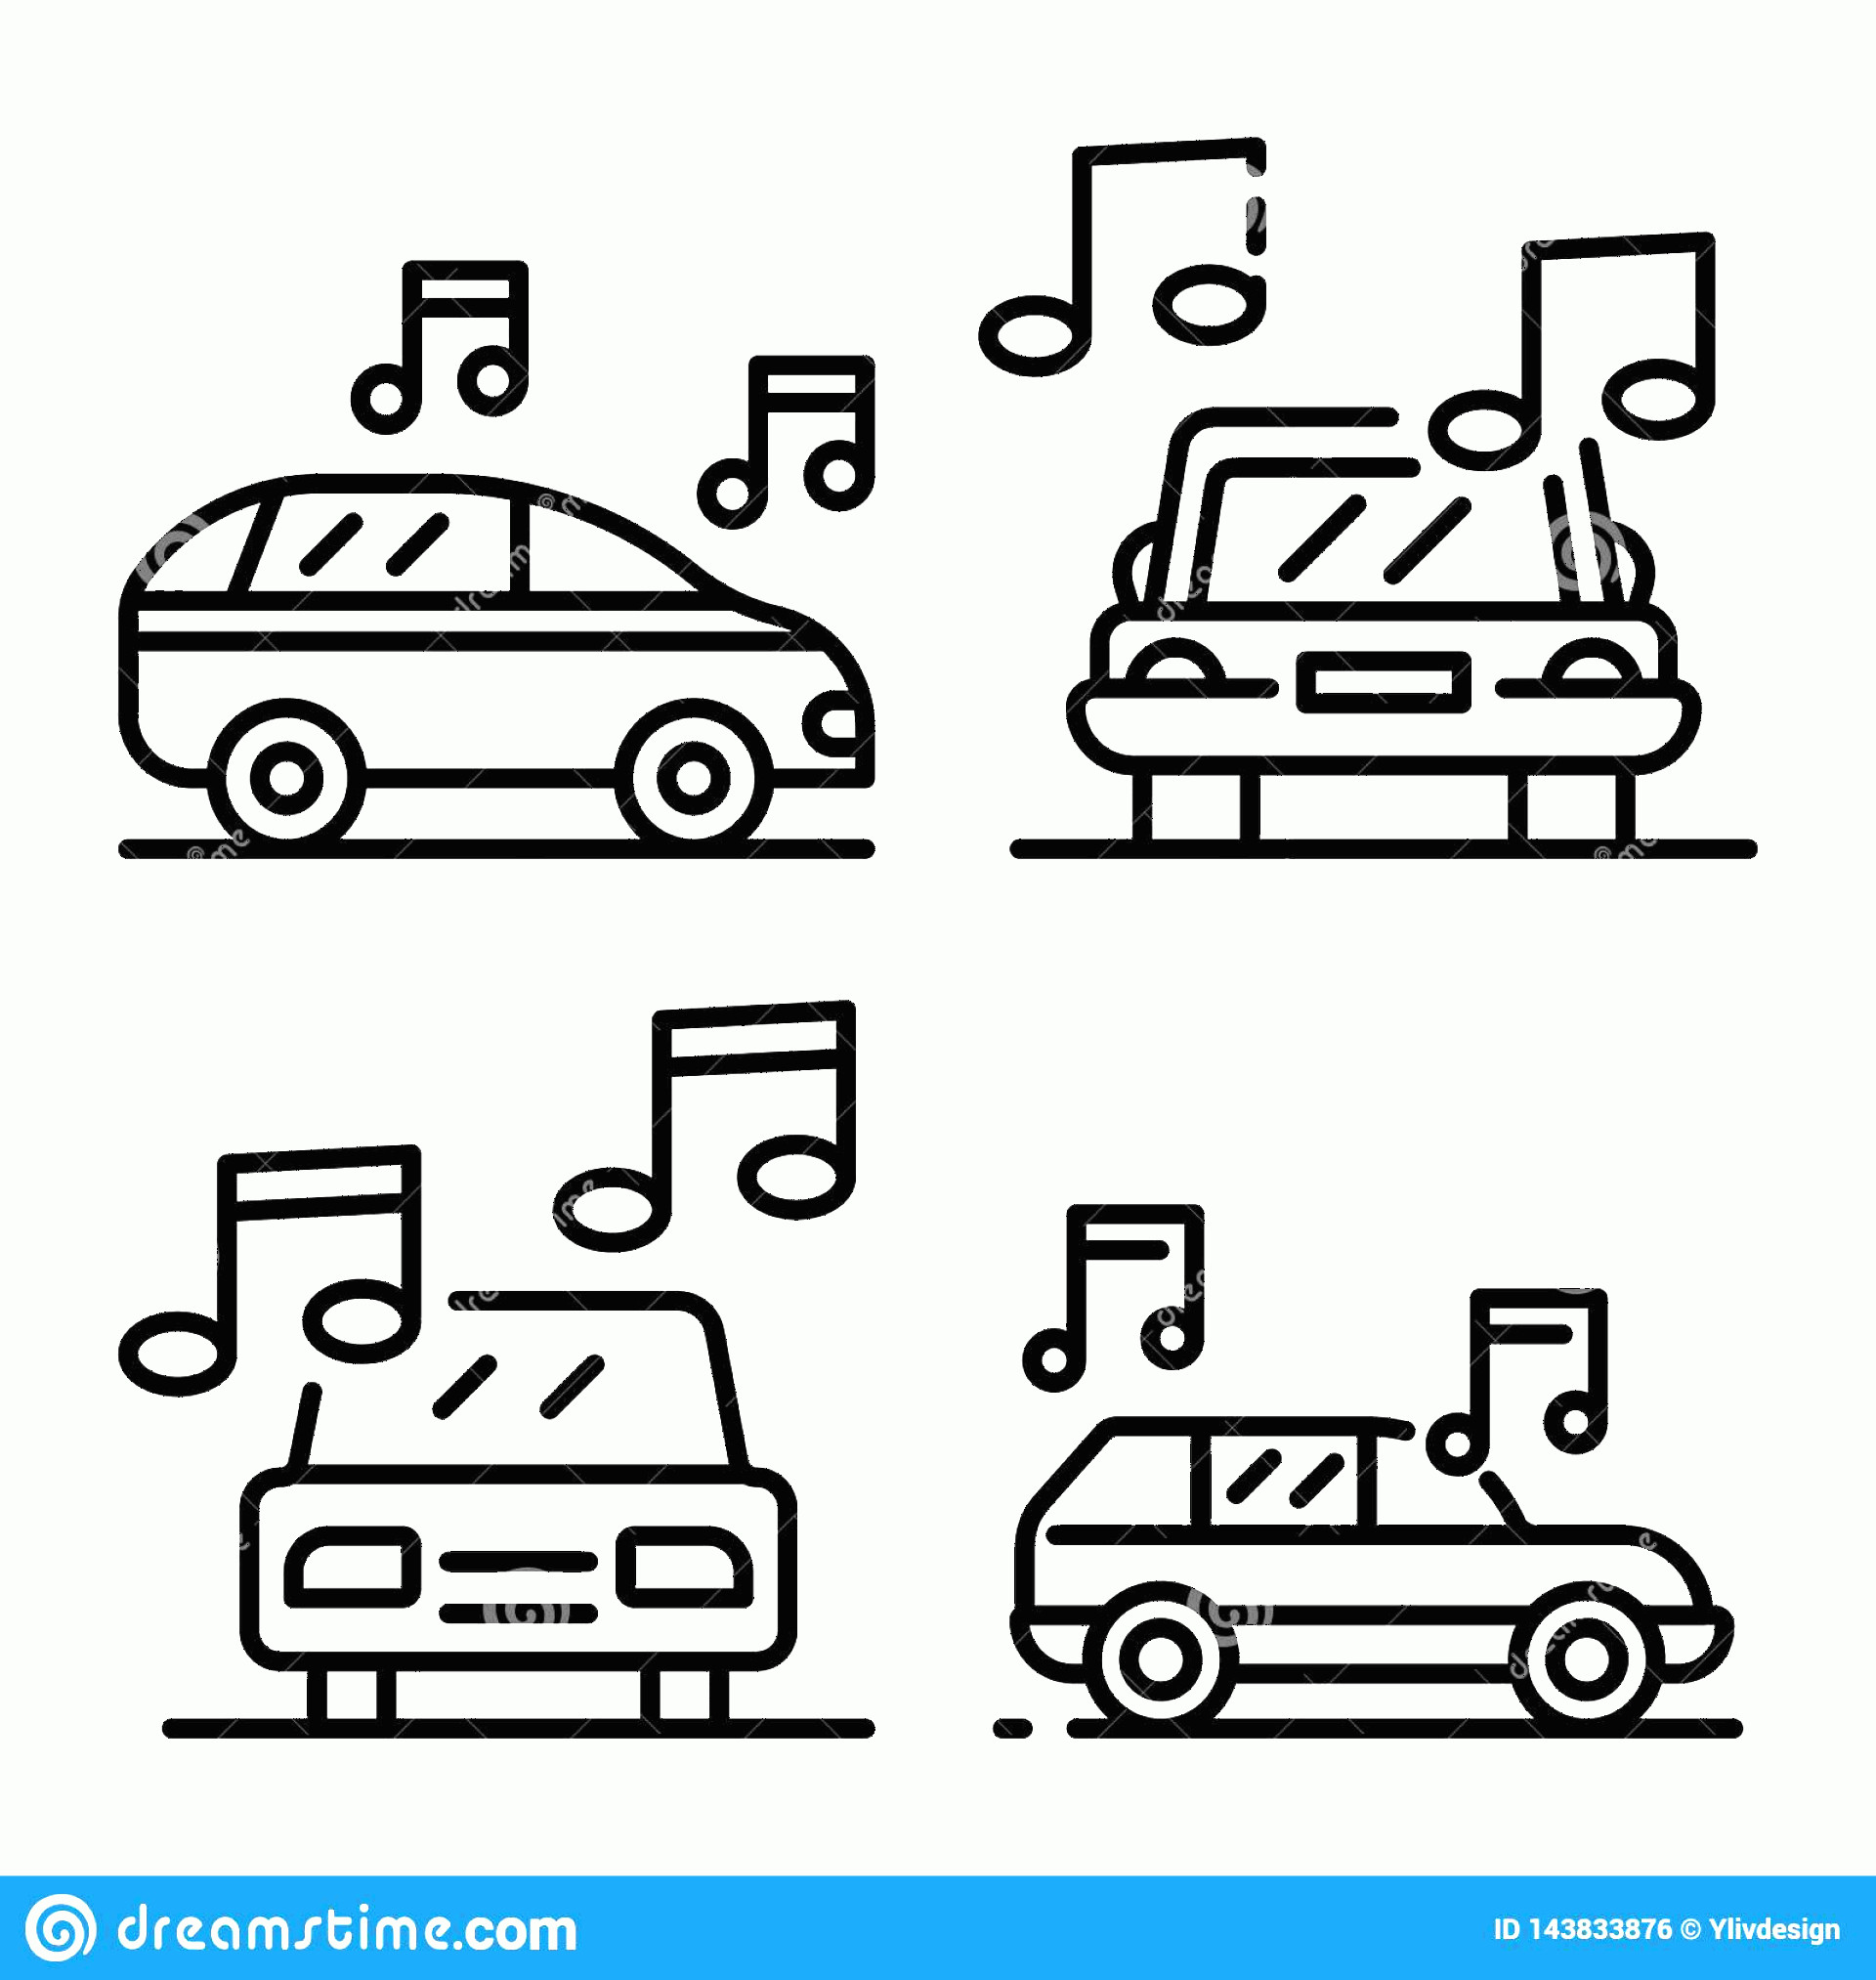 Car Audio Vector: Car Audio Icons Set Outline Style Car Audio Icons Set Outline Set Car Audio Vector Icons Web Design Isolated White Image